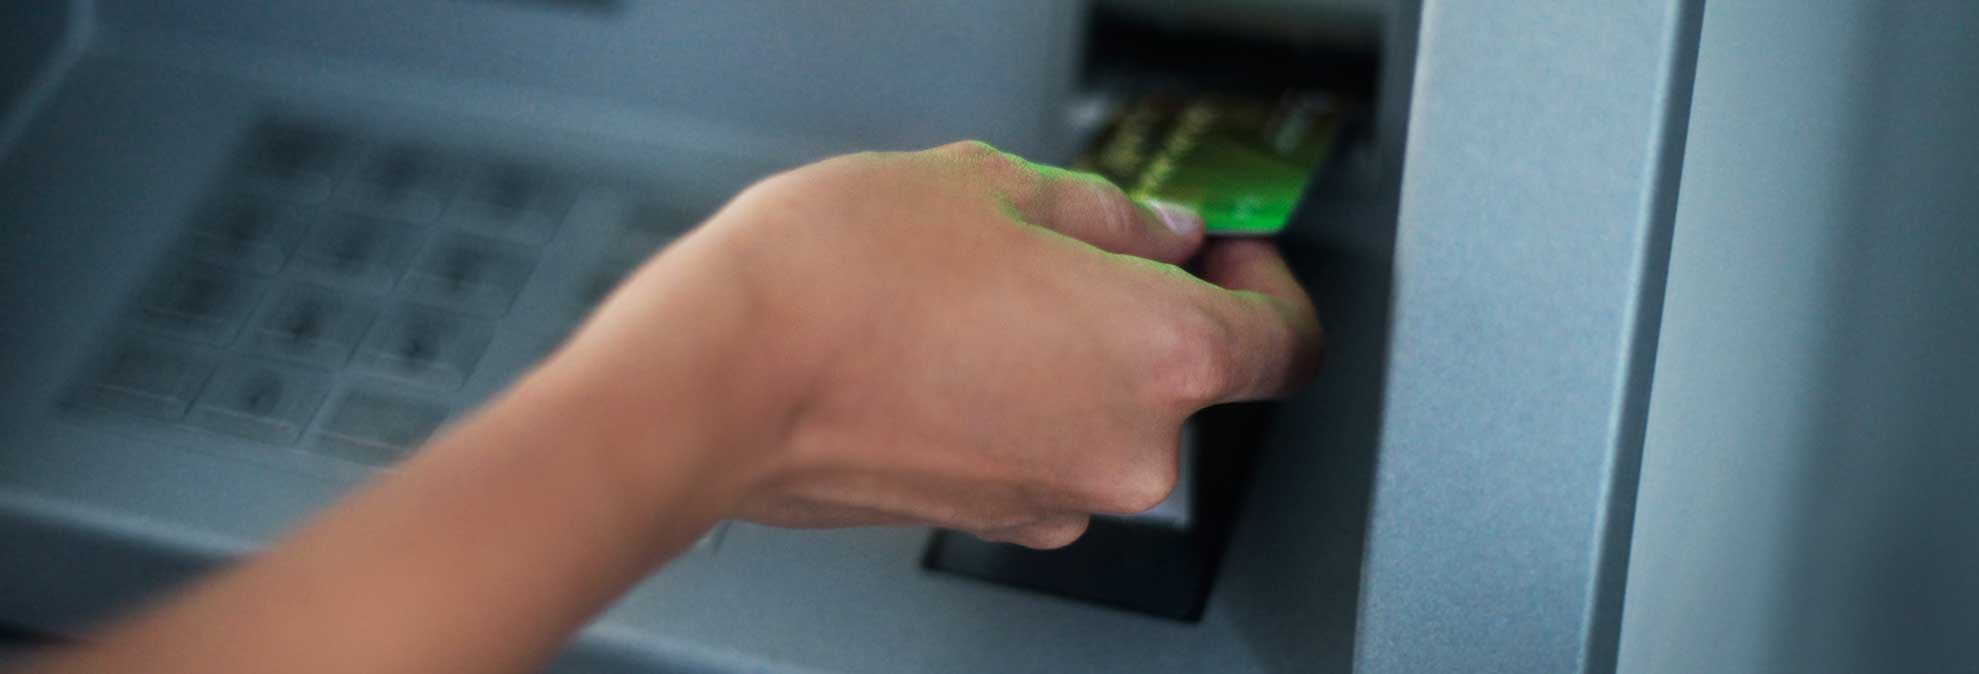 Thieves Get Craftier With Skimmers and Shimmers - Consumer Reports